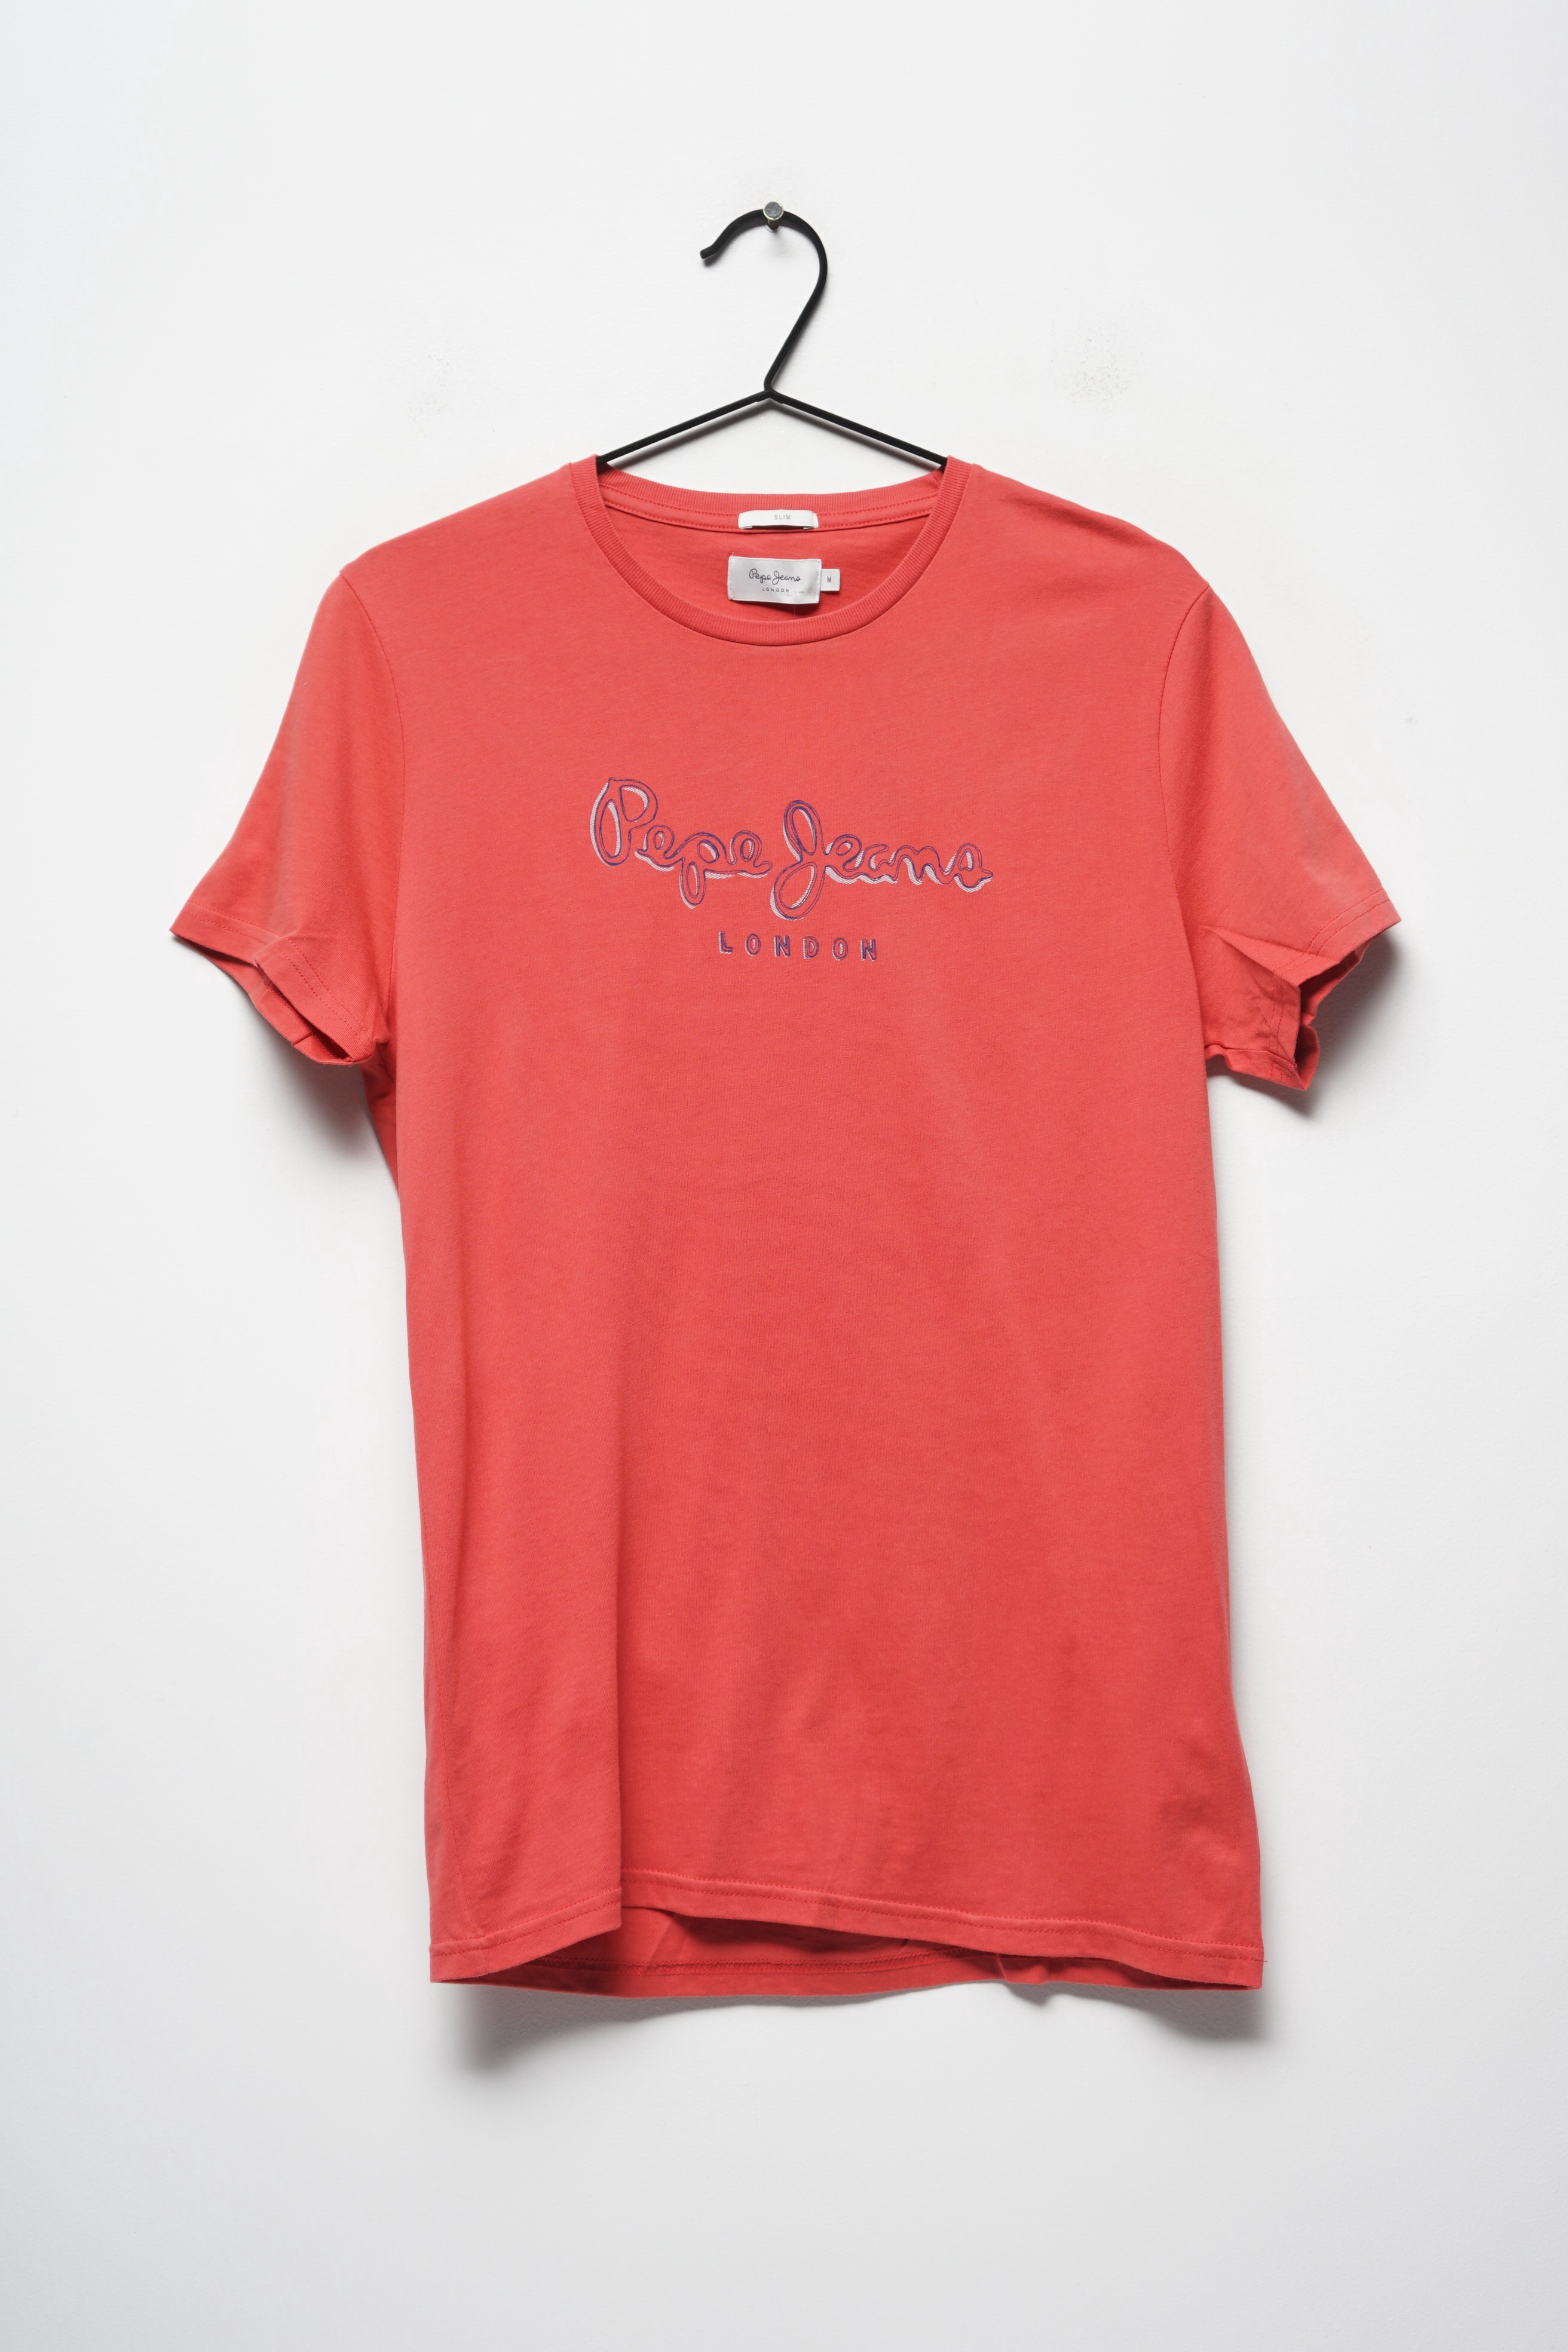 Pepe Jeans T-Shirt Rot Gr.M